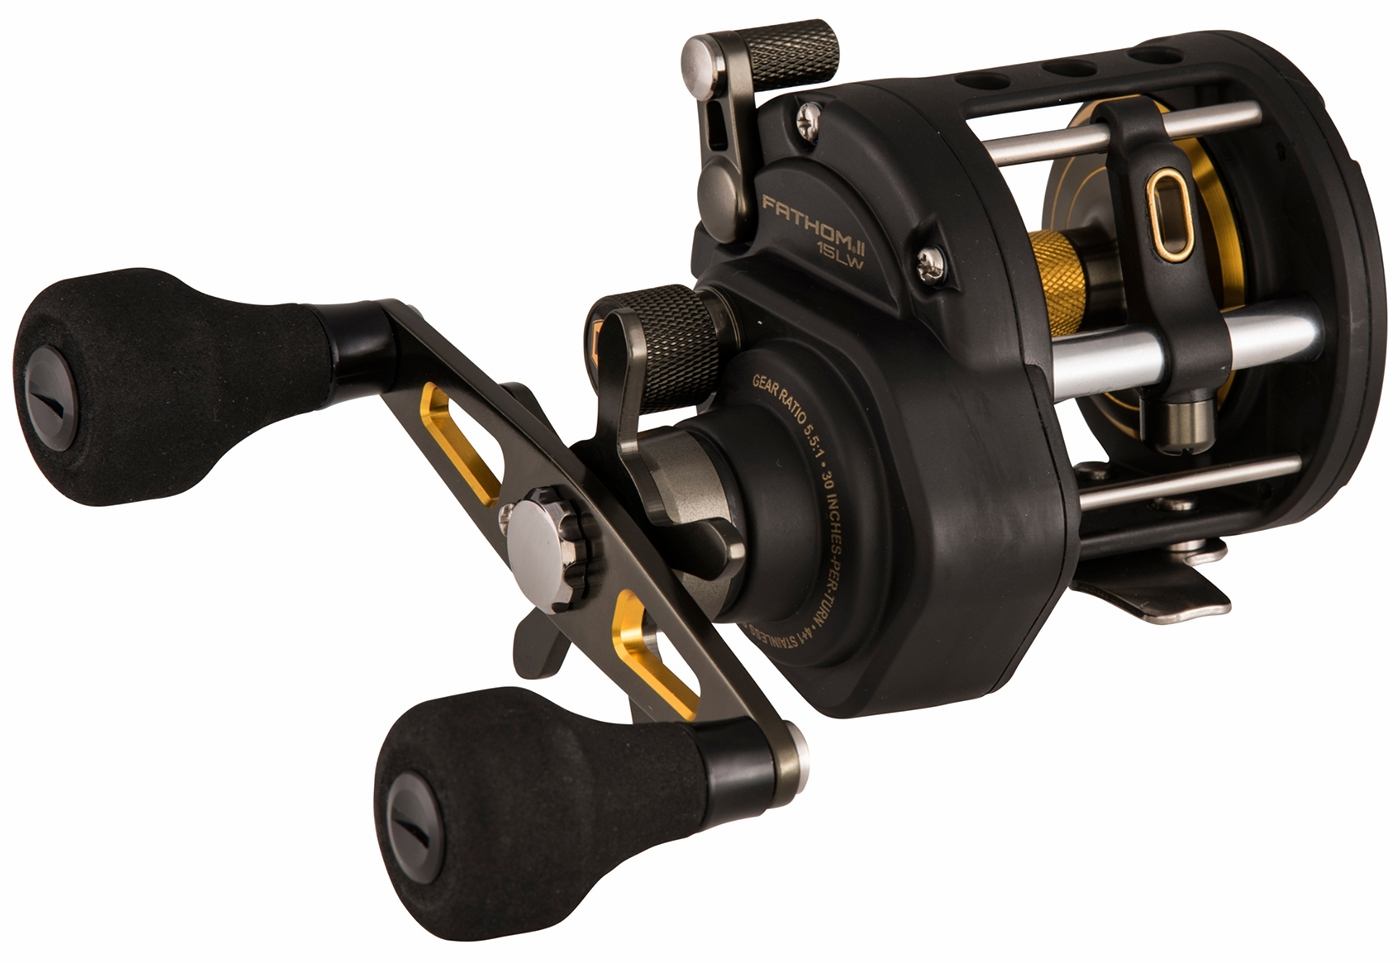 245e8b5a4b7 Tackle Direct: New Product Announcements from ICAST 2018 Day 1 | Milled